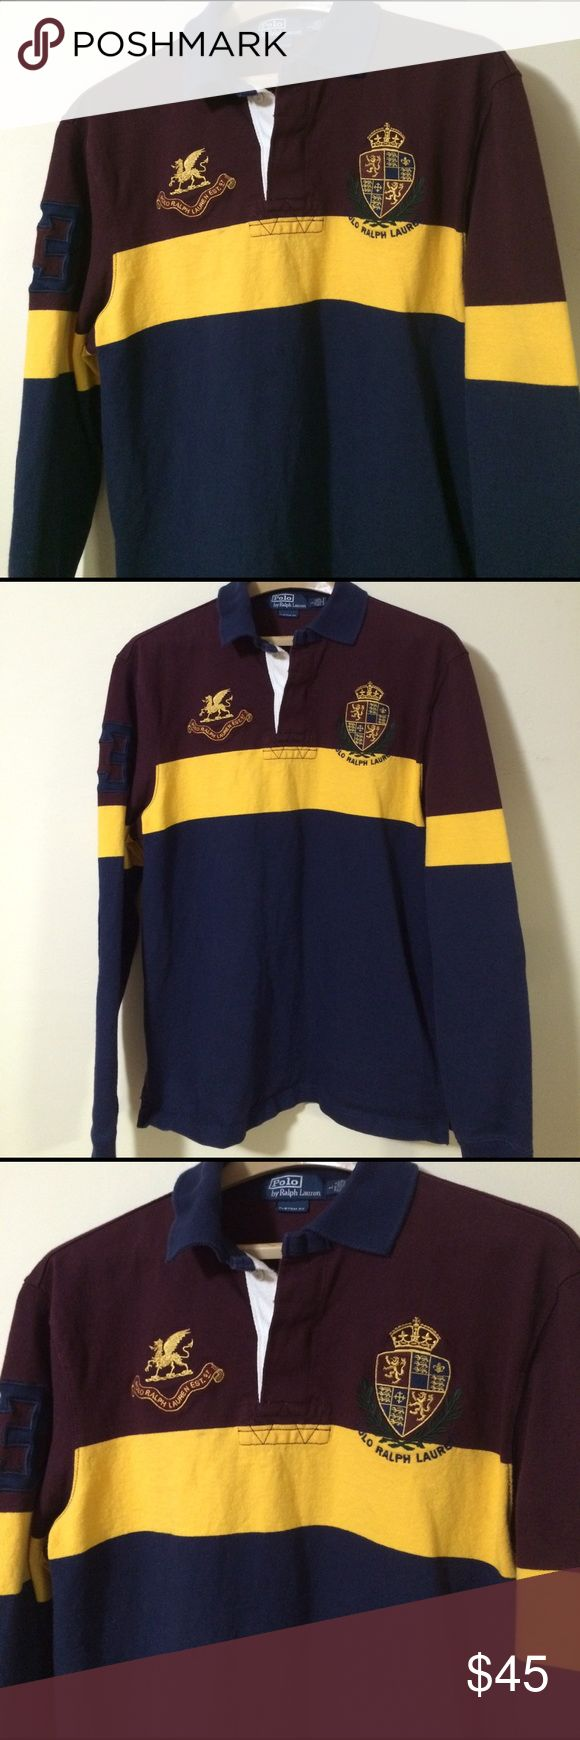 Polo Ralph Lauren Official Rugby Team polo! In excellent, like new condition. Authentic Polo Rugby team shirt. Polo collectors item. #3 stitched patch on the sleeve. Great condition! Maroon, gold and navy colors. Polo by Ralph Lauren Shirts